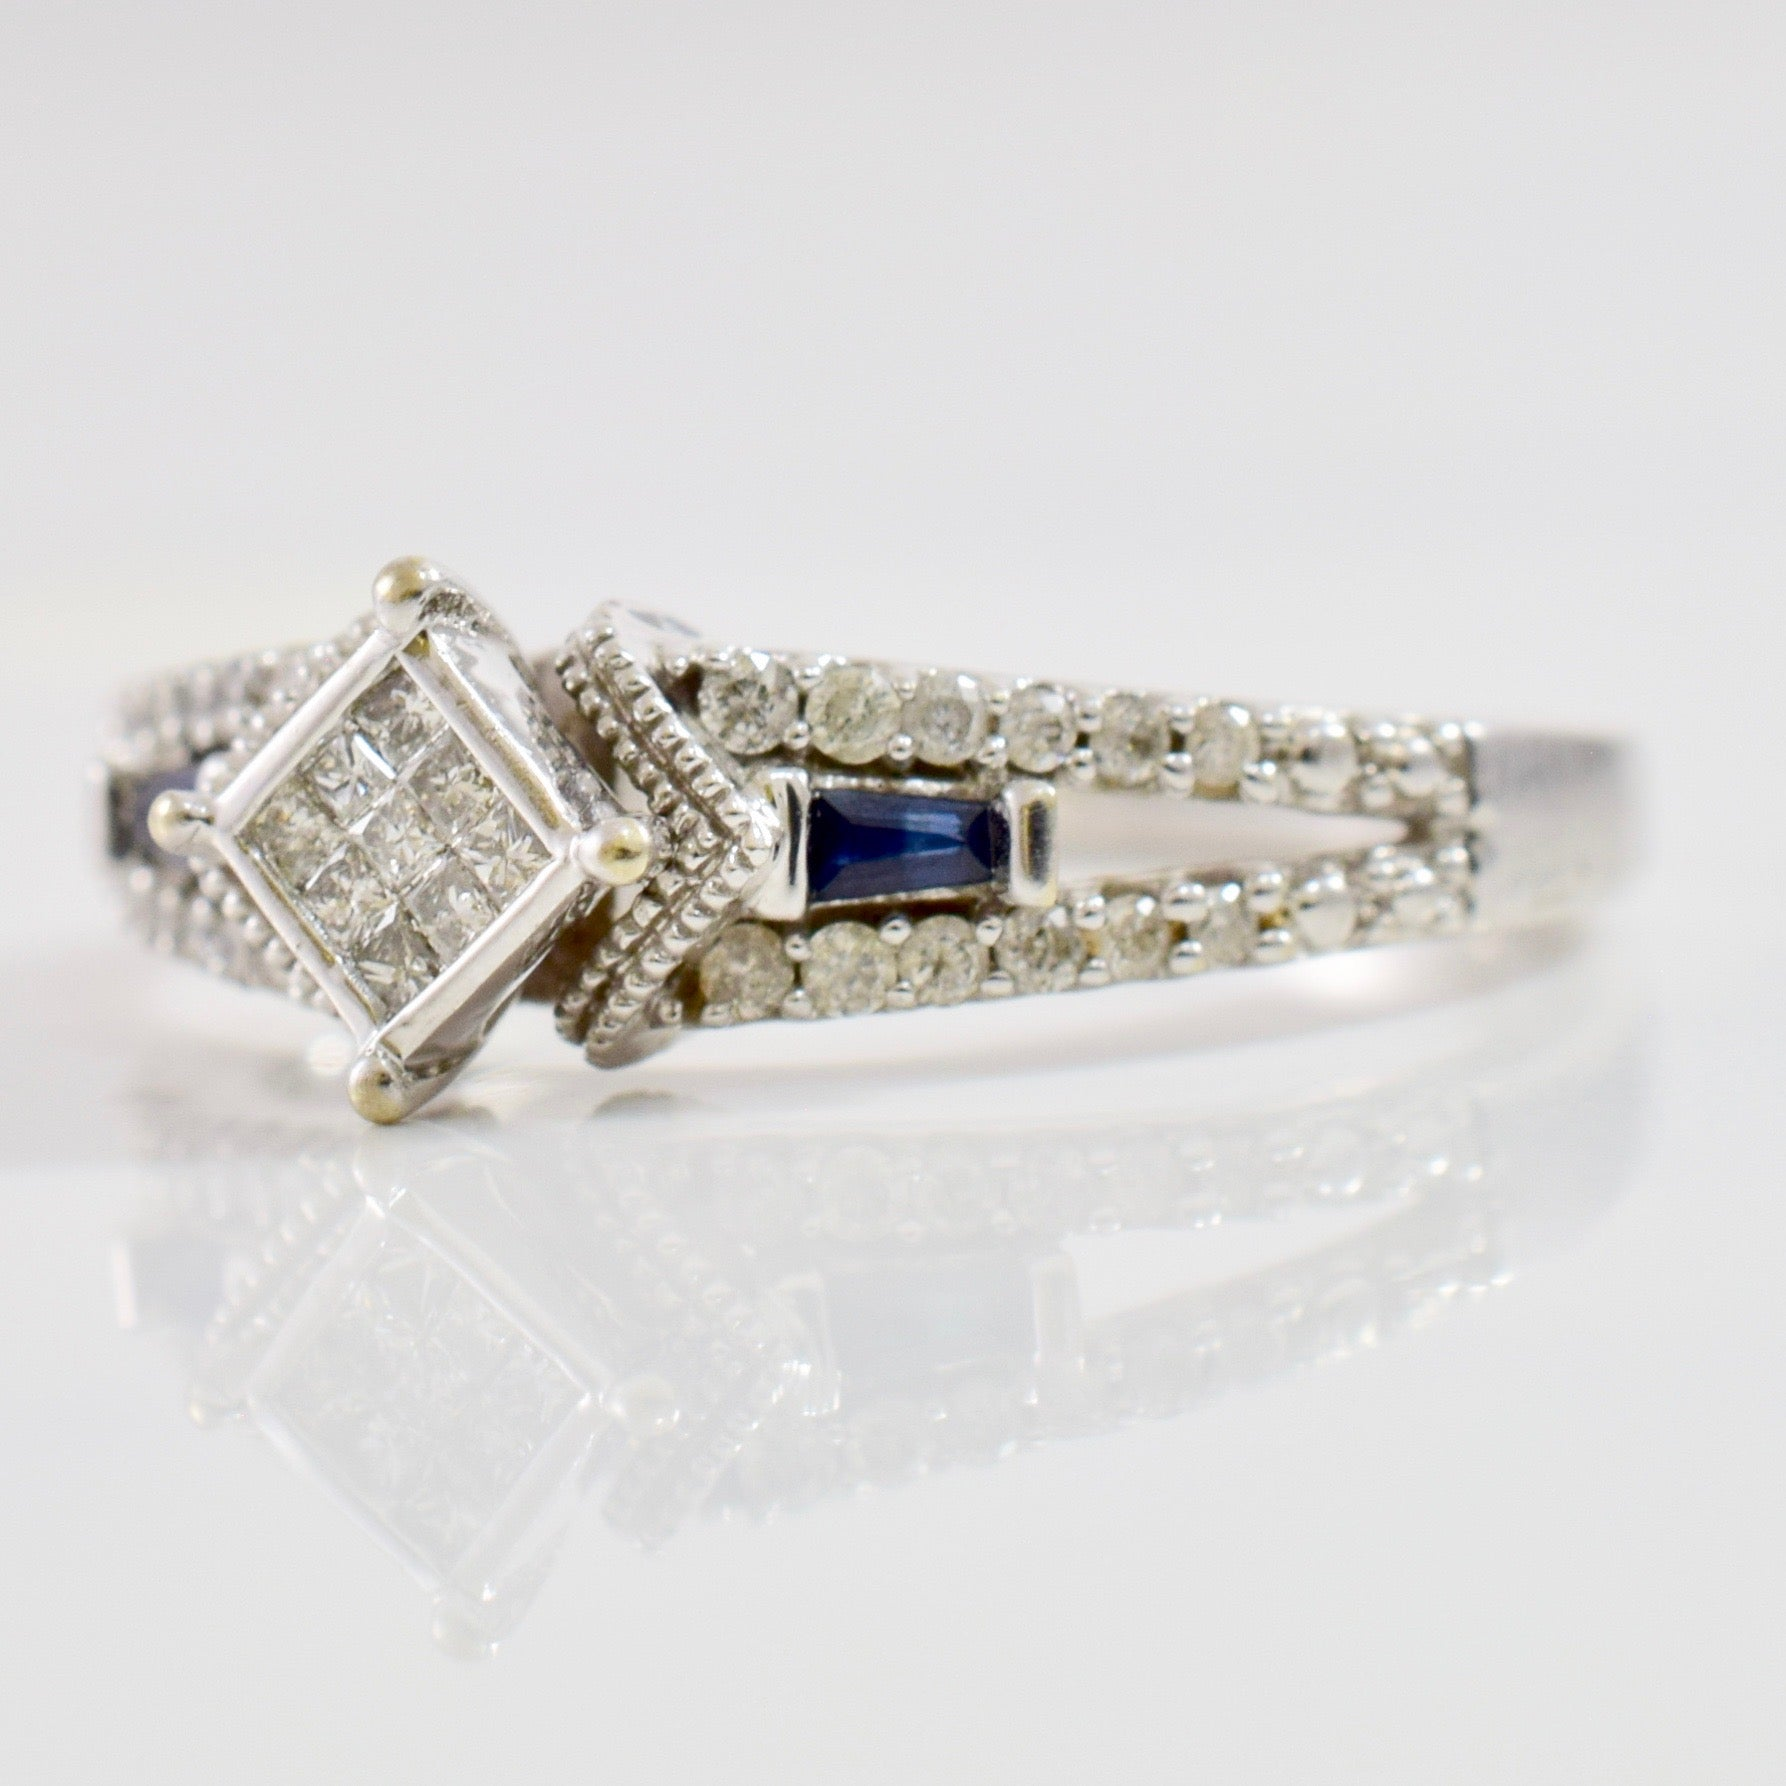 Diamond Cluster Ring with Tiny Sapphire Accents | 0.12 ctw SZ 6 |